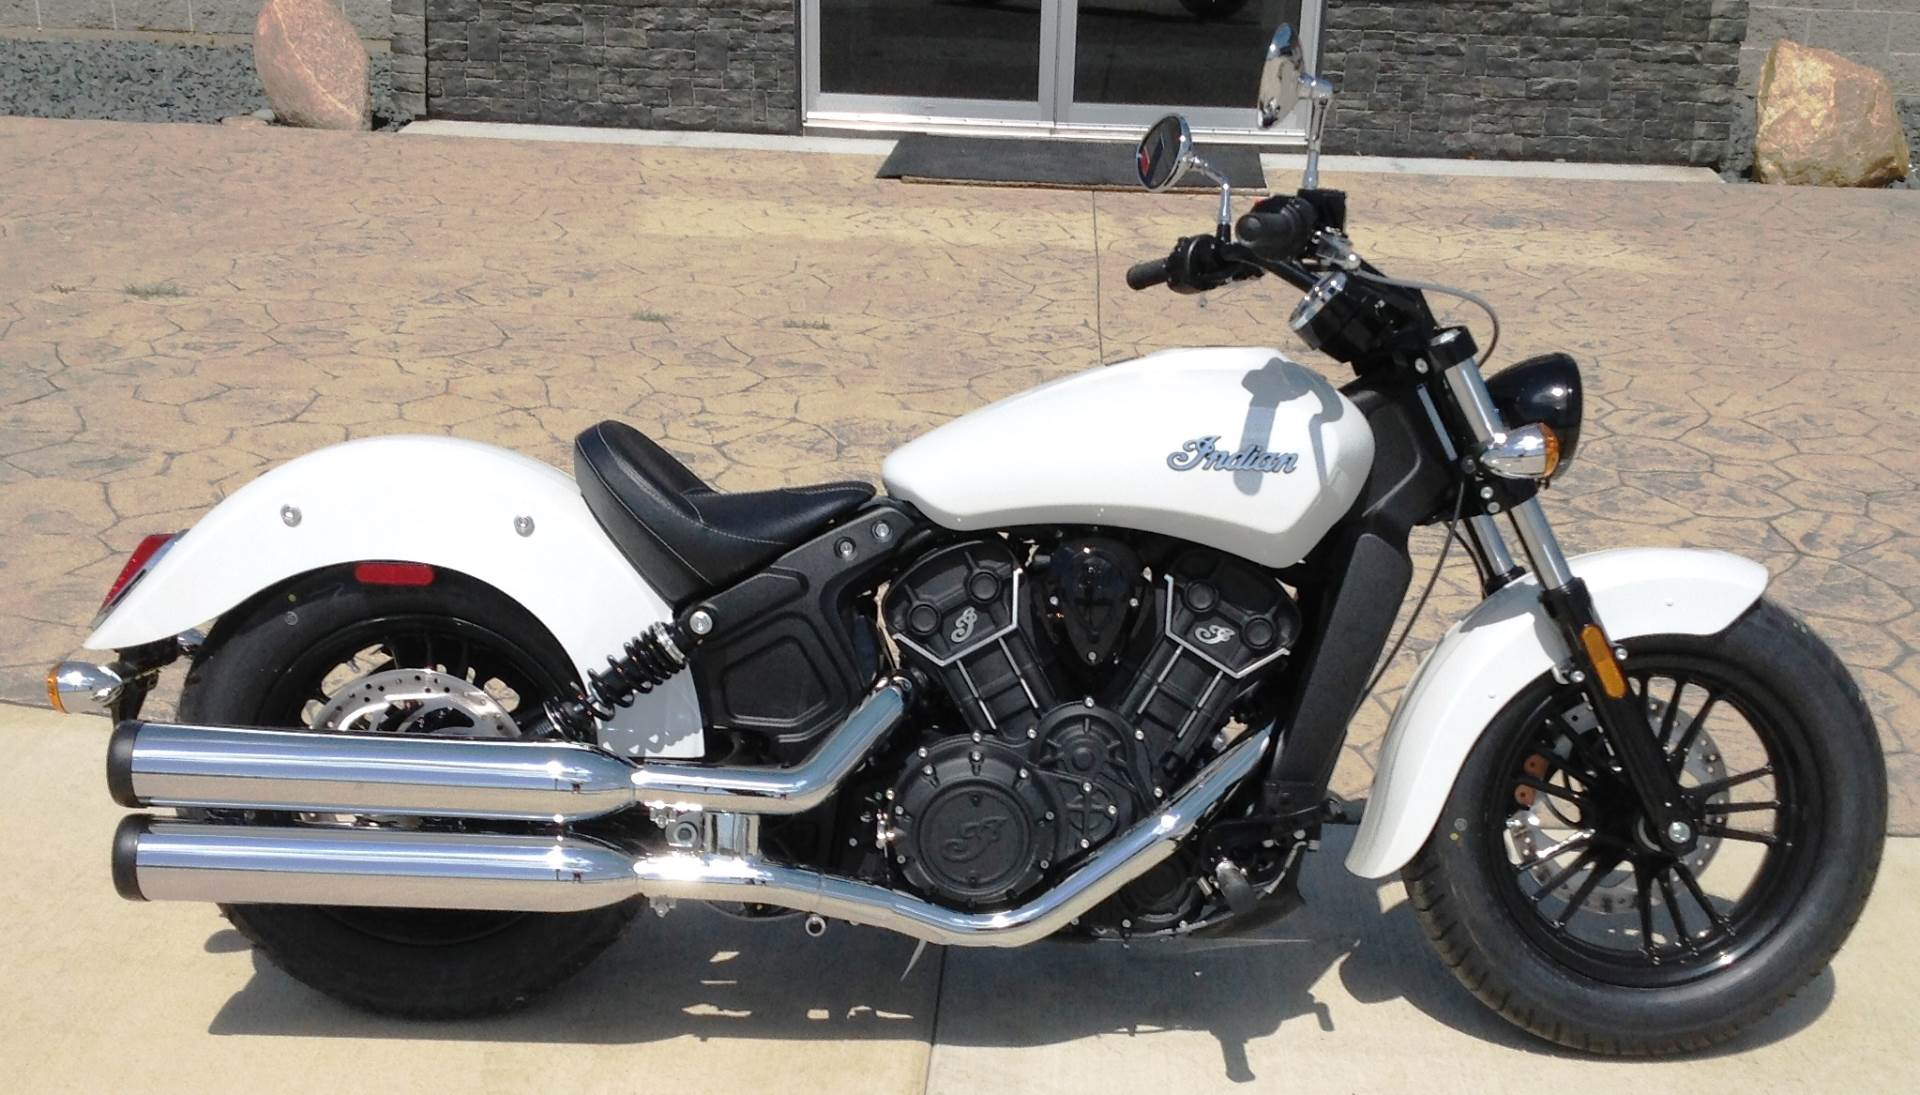 2017 Indian Scout Sixty 1